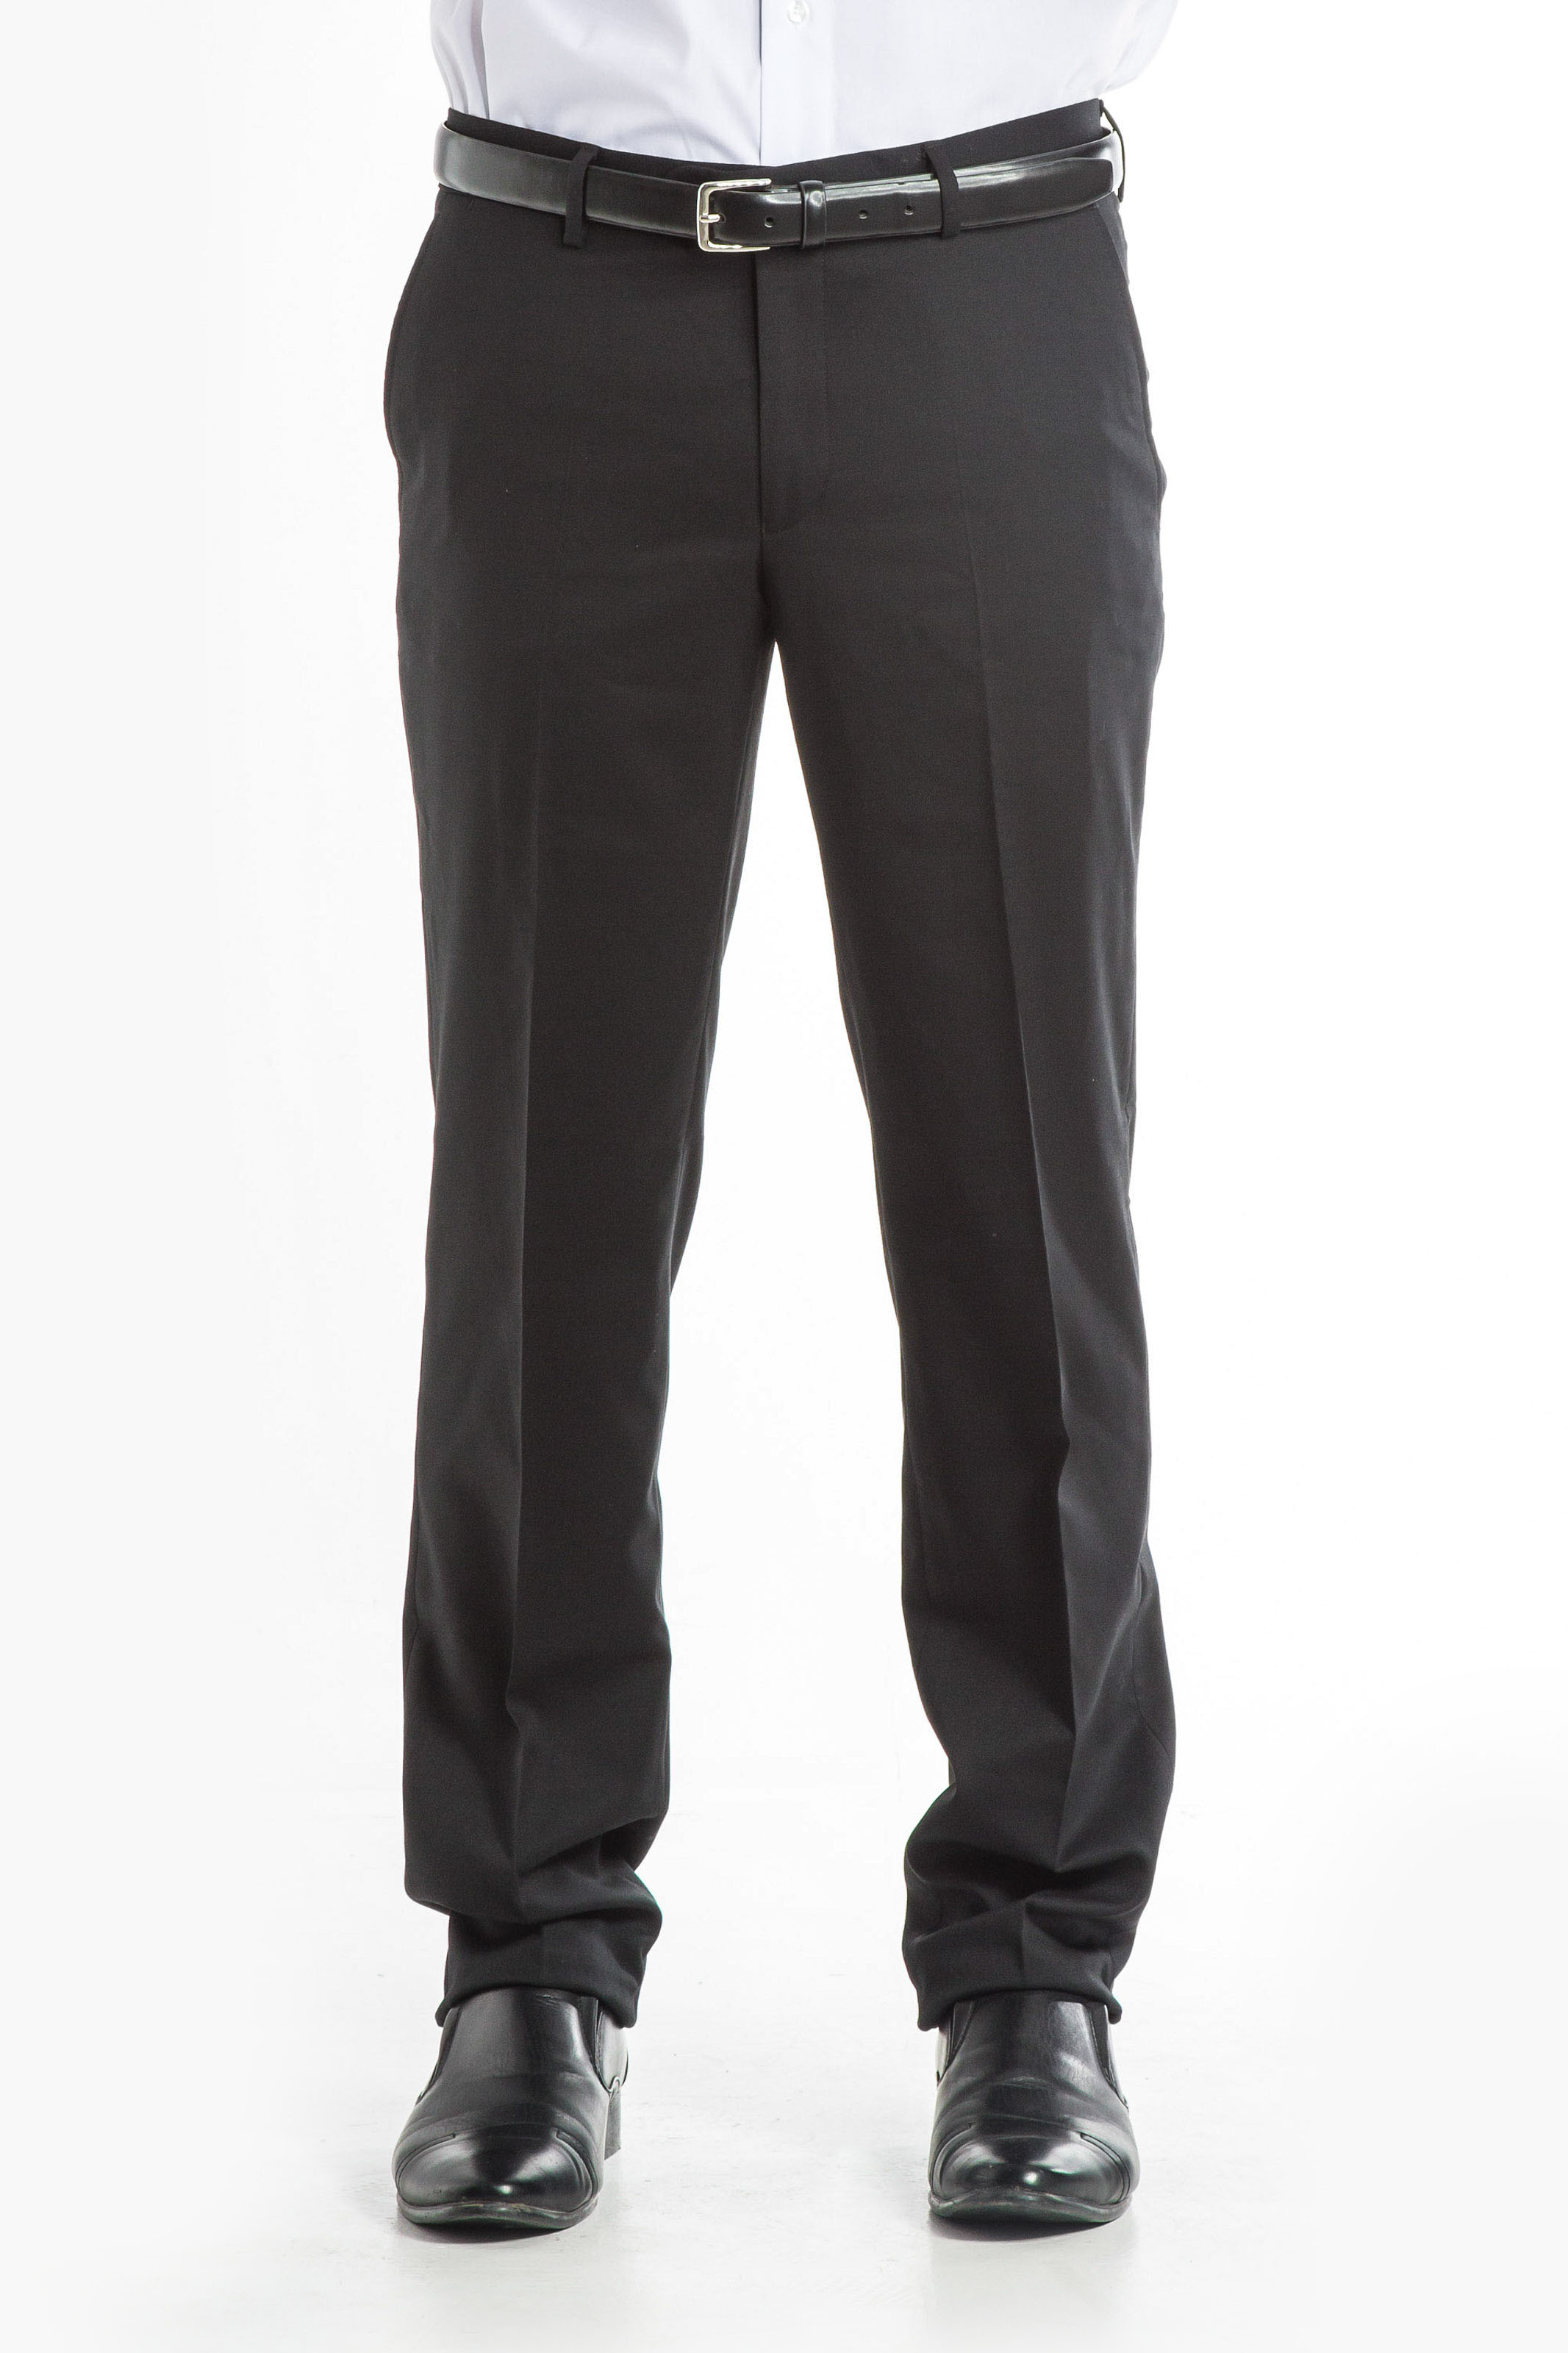 Aris Uniforms-MT01-Men's Flat Front Trouser